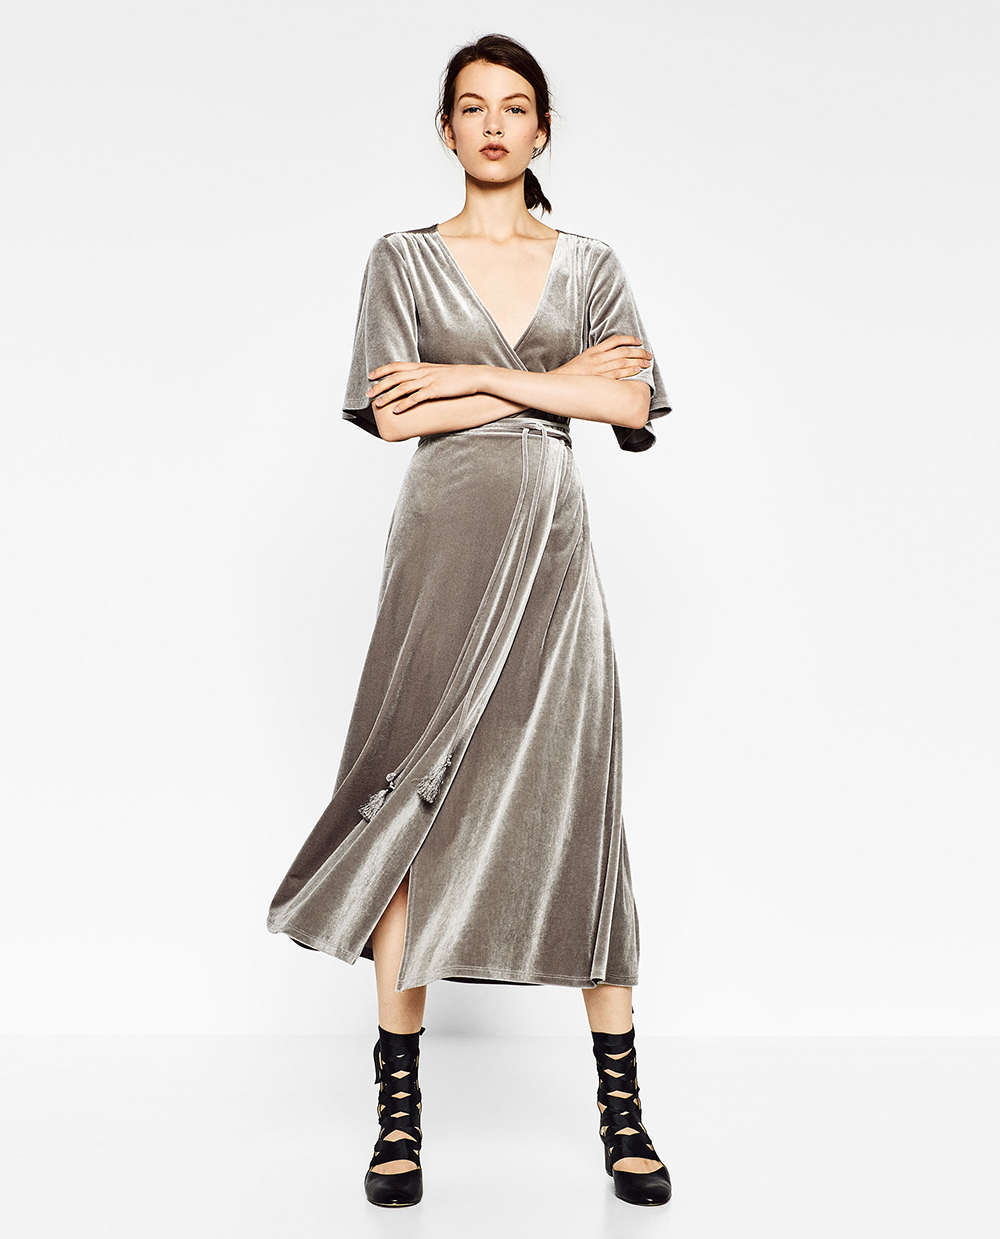 Zara Crossover Velvet Dress - 8 Perfect Velvet Pieces for Fall